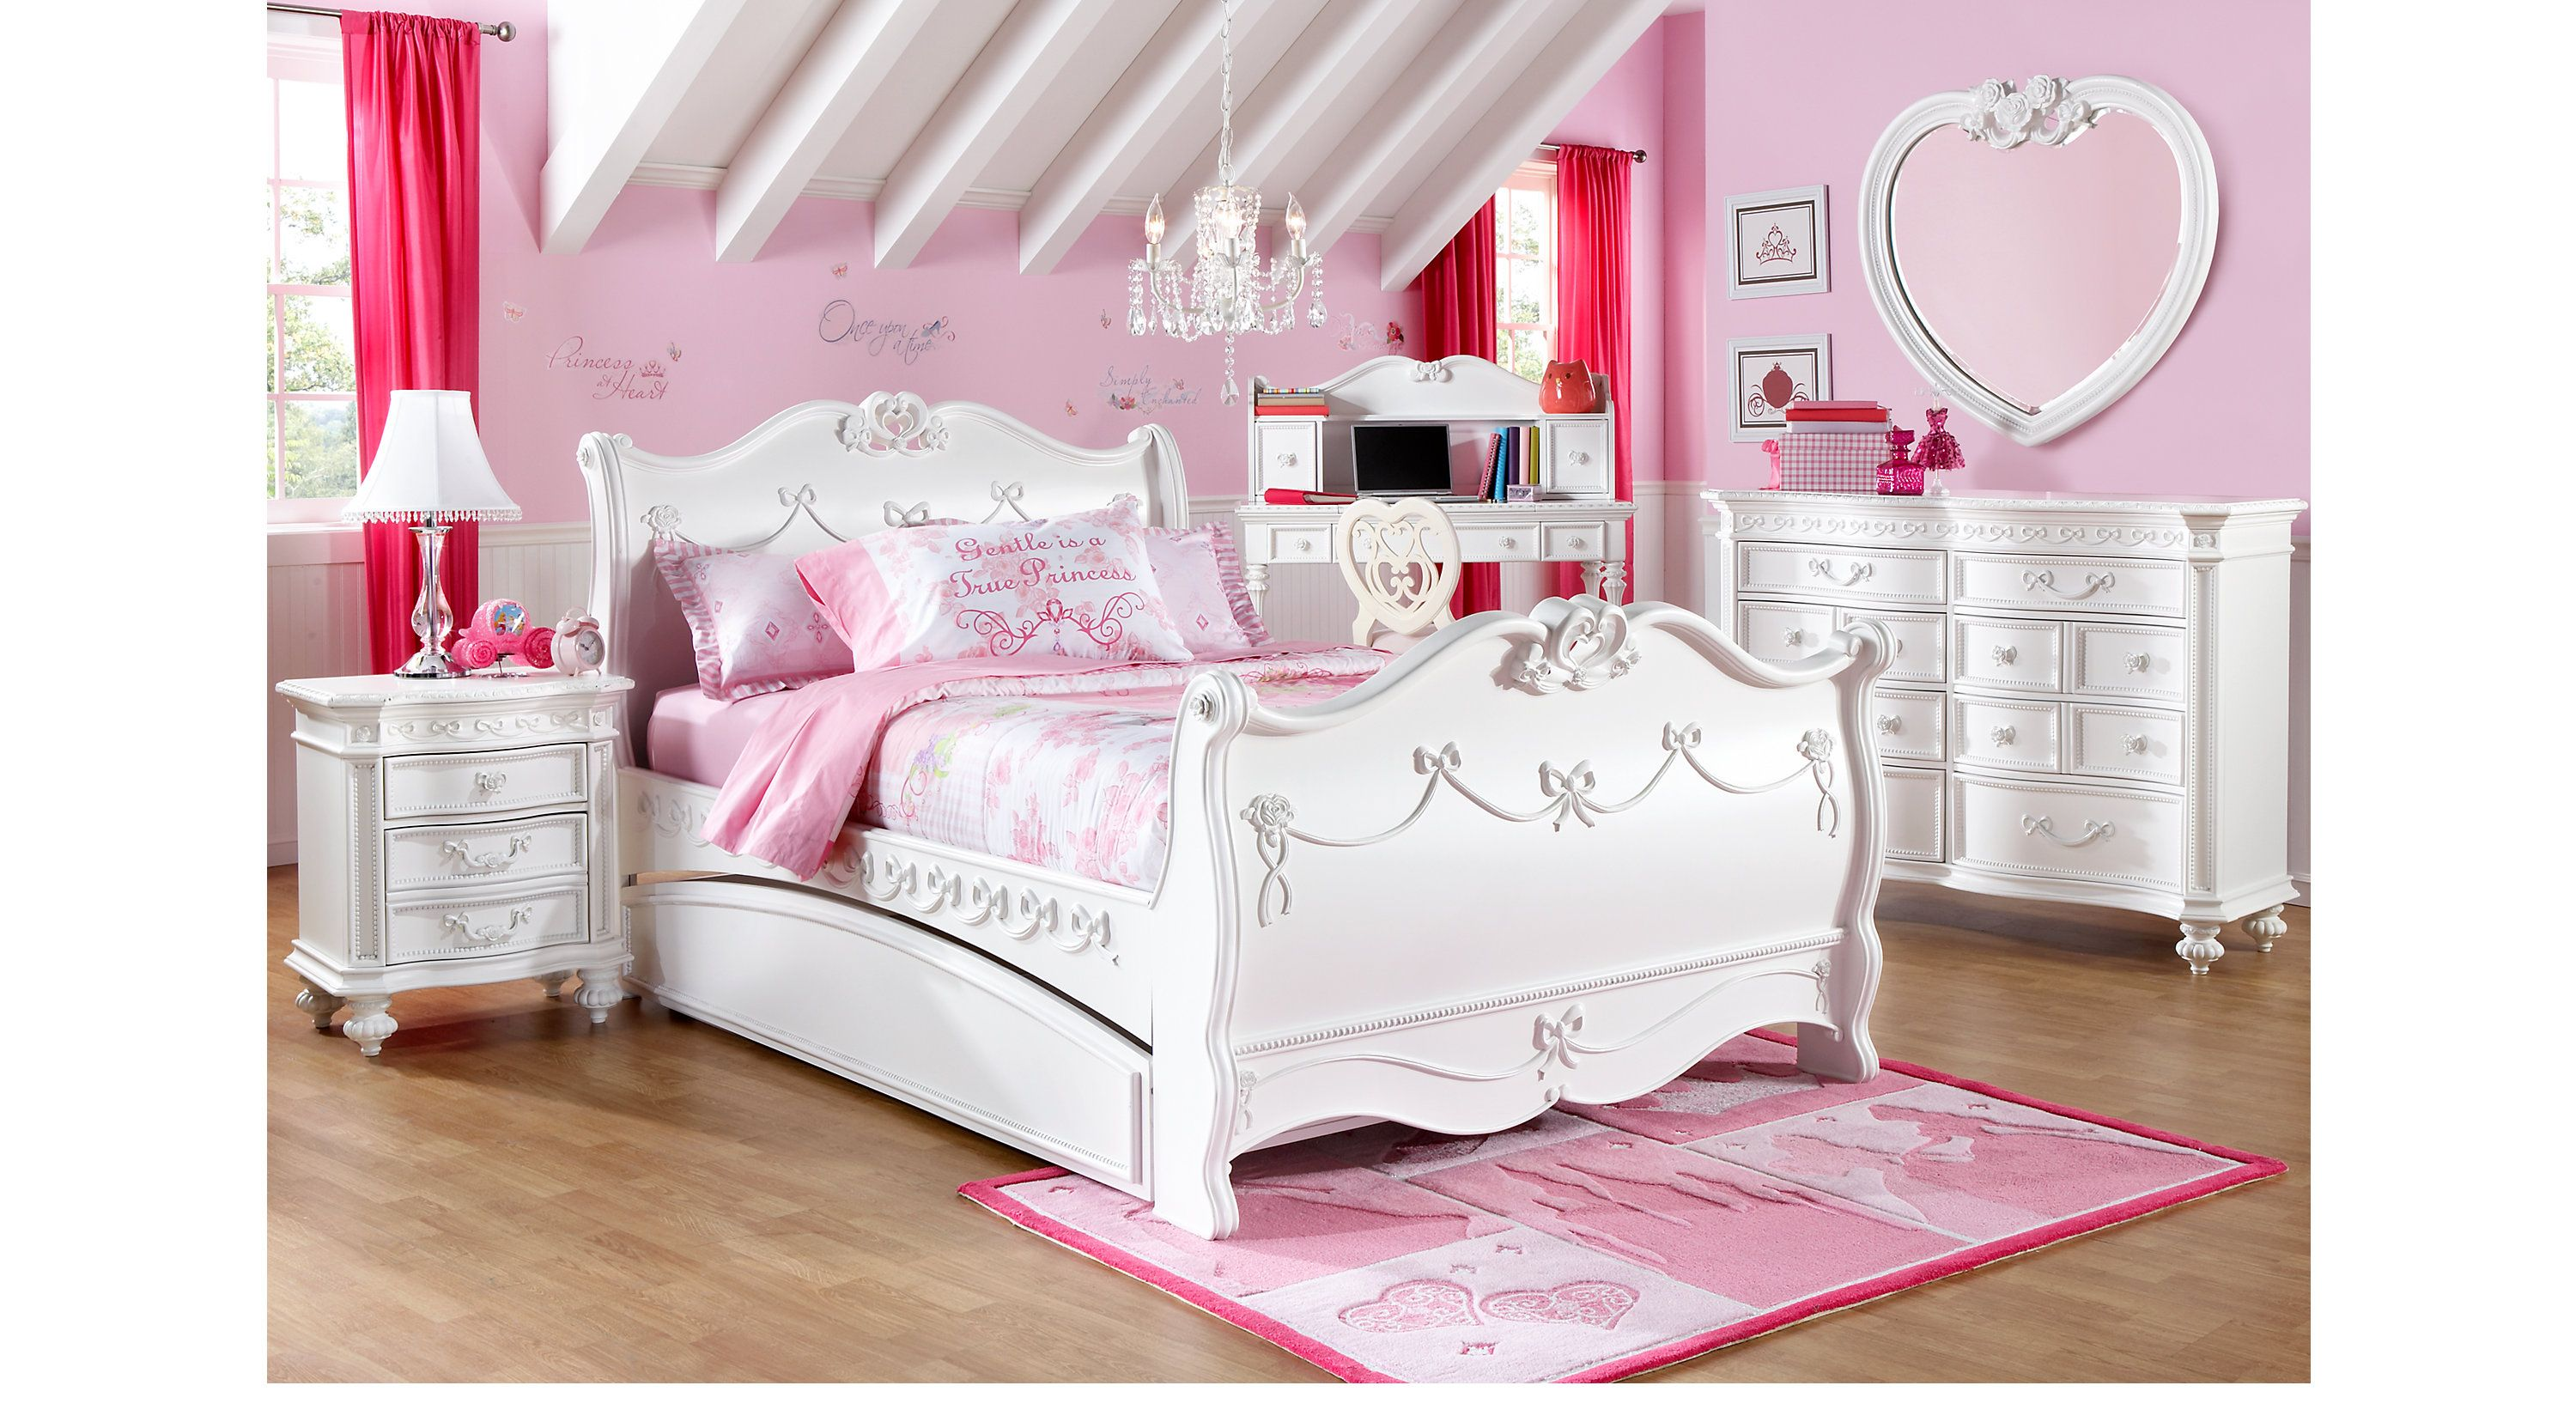 Disney Princess White 5 Pc Twin Sleigh Bedroom Look At The Dresser And Heart Shaped M Girls Bedroom Sets Girls Bedroom Furniture Sets Princess Bedroom Set